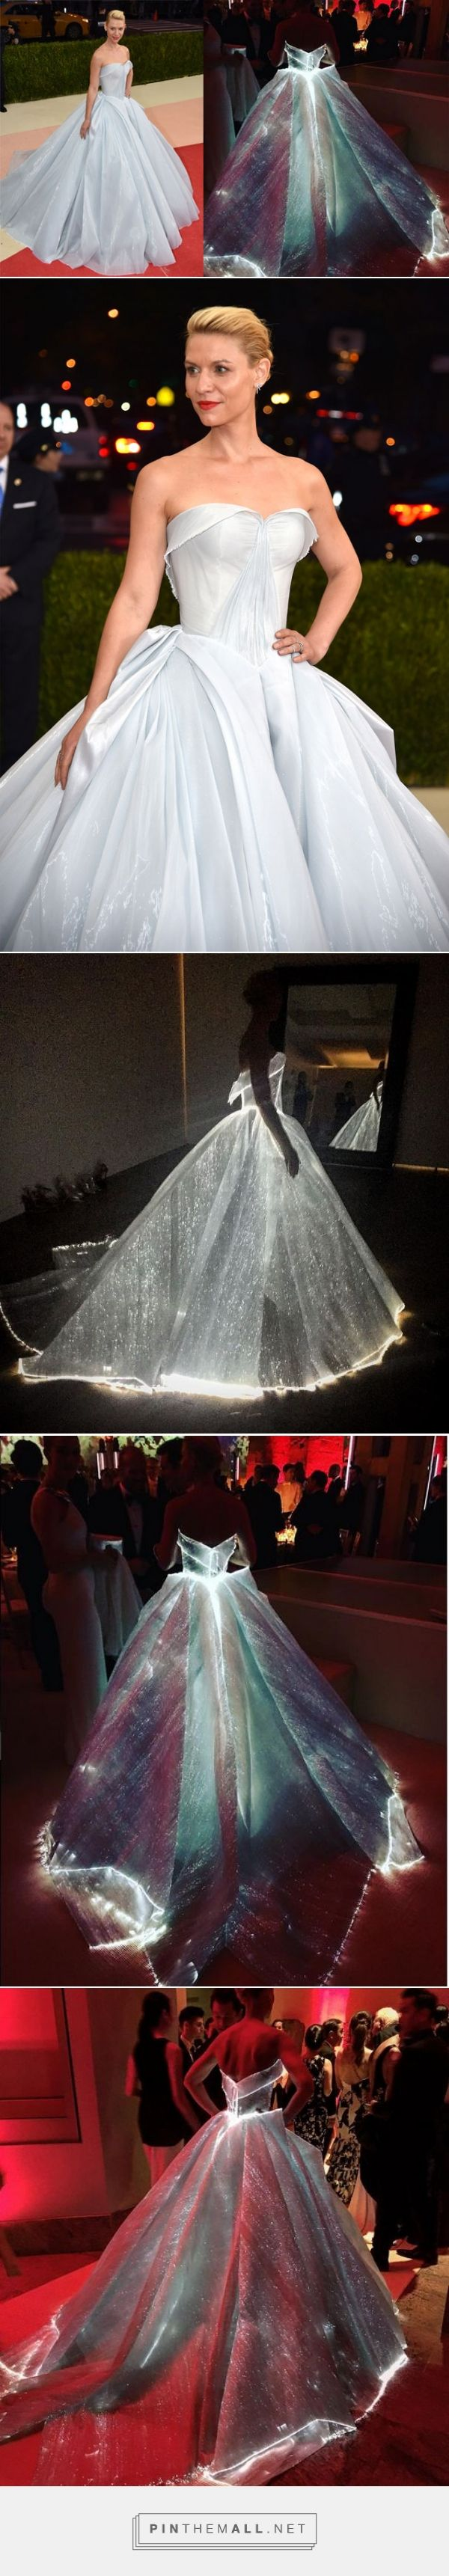 Claire Danes | The 37-yr-old donned a custom Cinderella-style Zac Posen gown that actually lit up all along the skirt & bust, w/ the help of a weighty 30 battery packs. The large number of mini battery packs were intricately sewn into the fibre optic organza dress to make the garment glow in the dark.